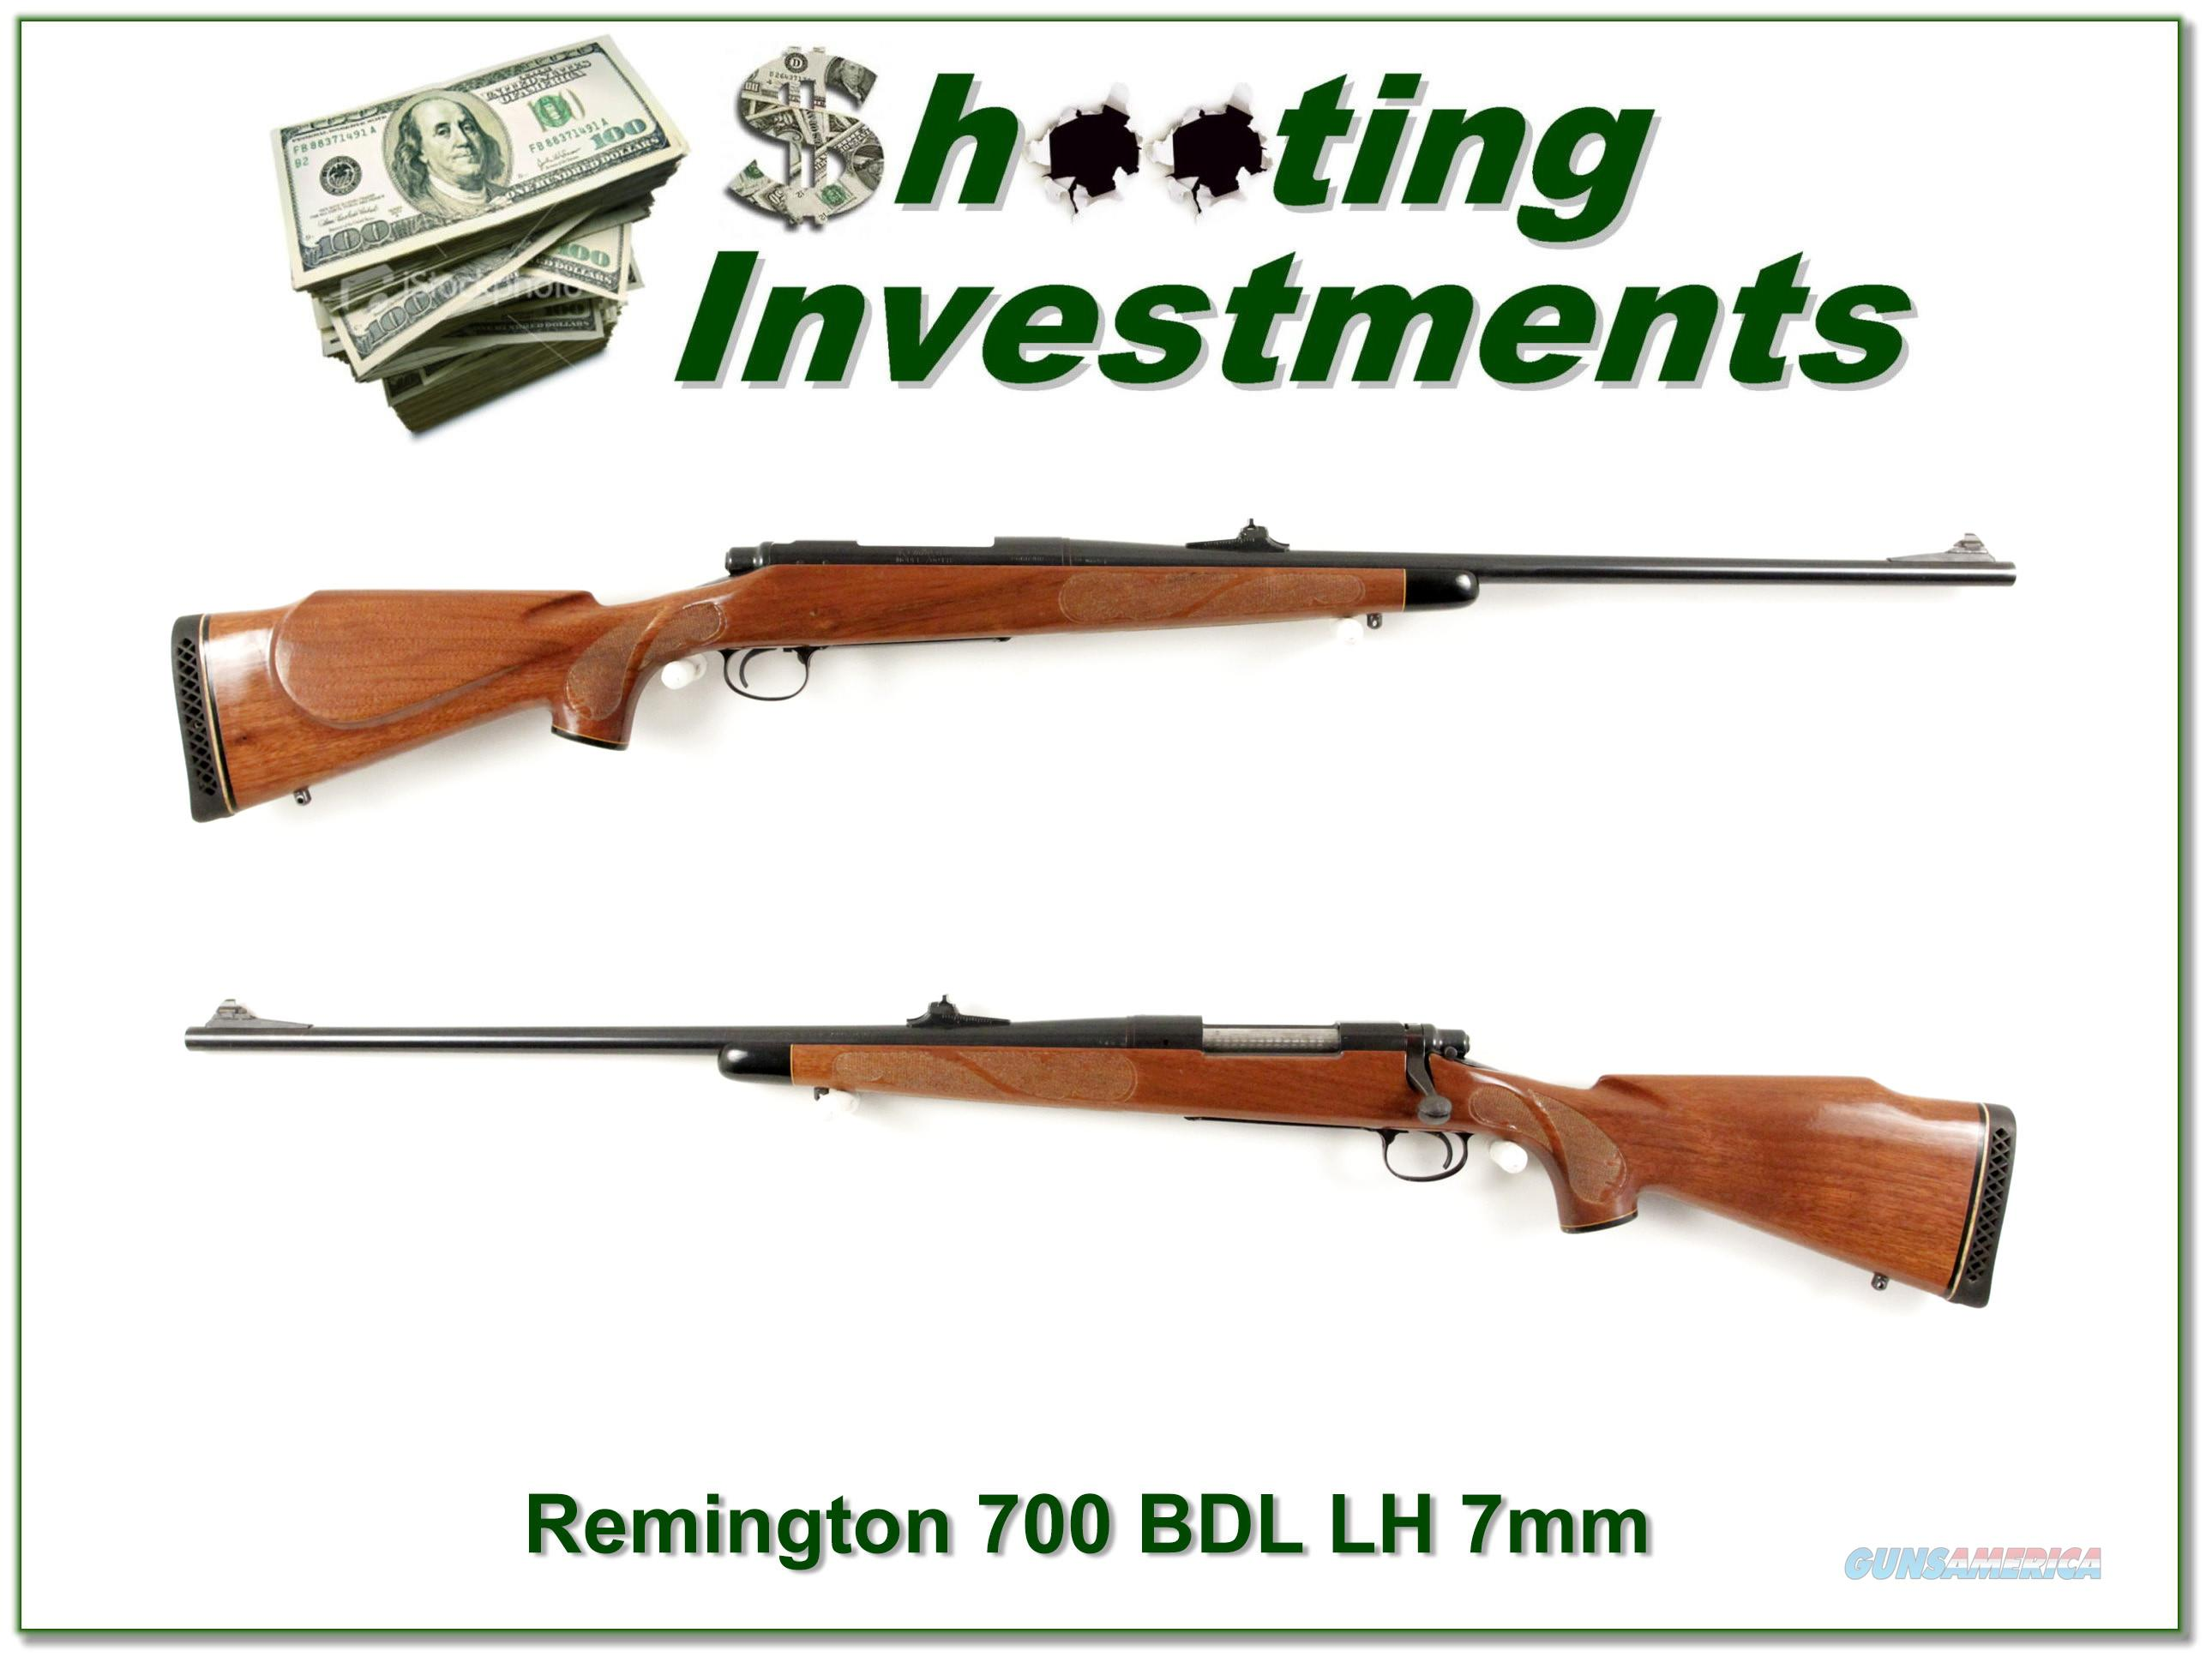 Early Remington 700 BDL Left Handed, Pressed Checkering 7mm  Guns > Rifles > Remington Rifles - Modern > Model 700 > Sporting